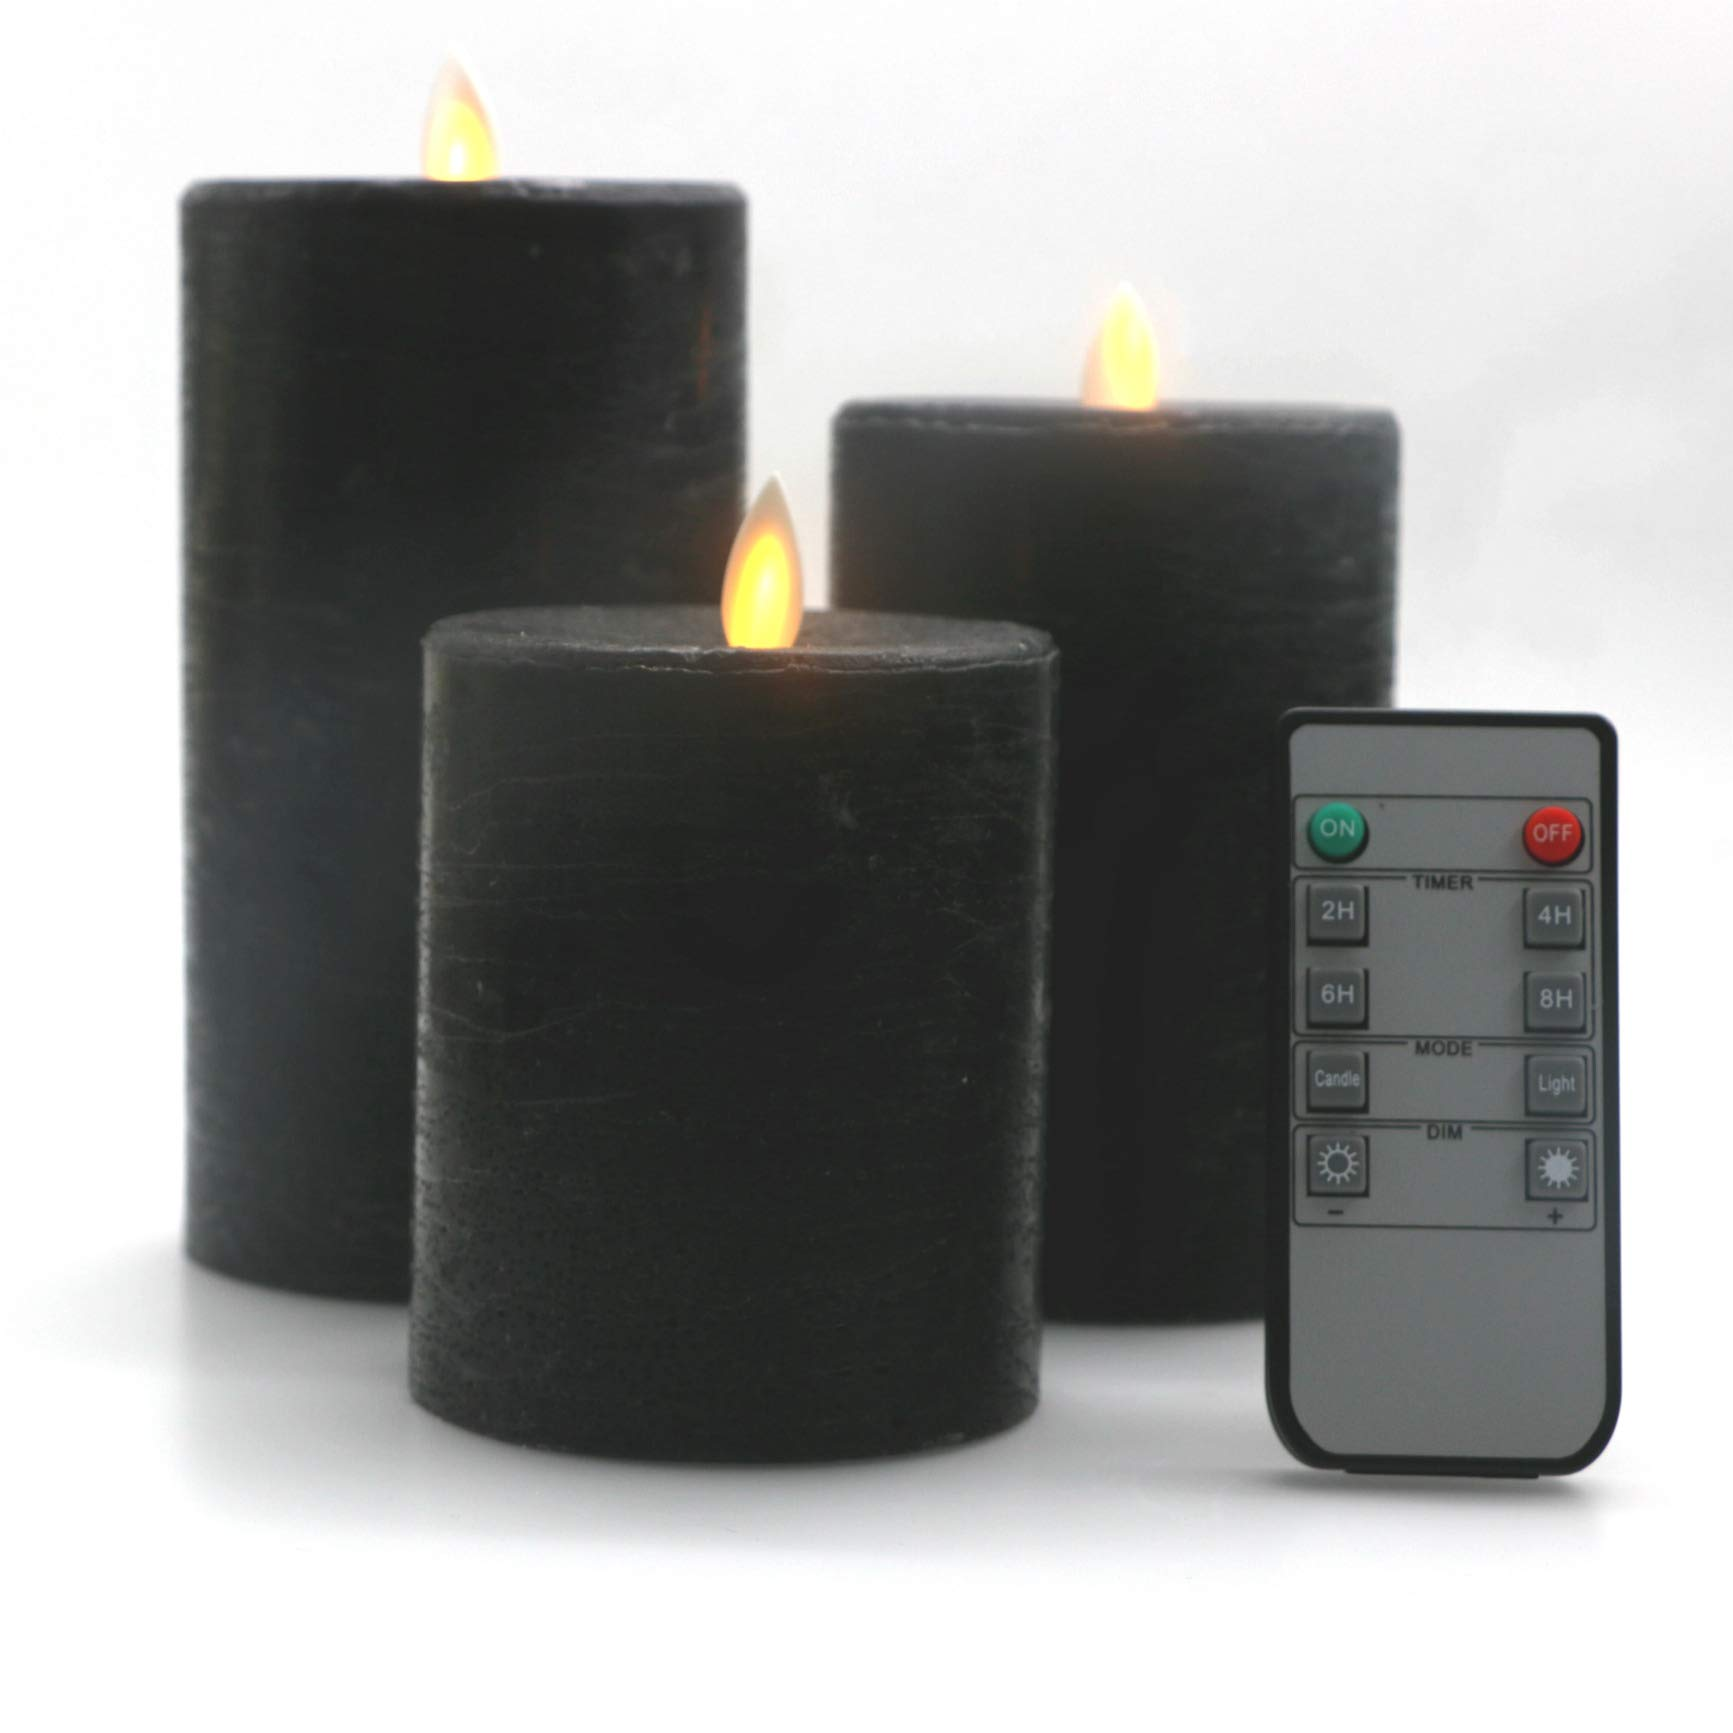 Kitch Aroma Black Flameless Pillar Candles Set of 3 Battery Operated with Moving Flame Wick Flickering LED Pillar Candle with Remote and Timer (Black, 3.15)